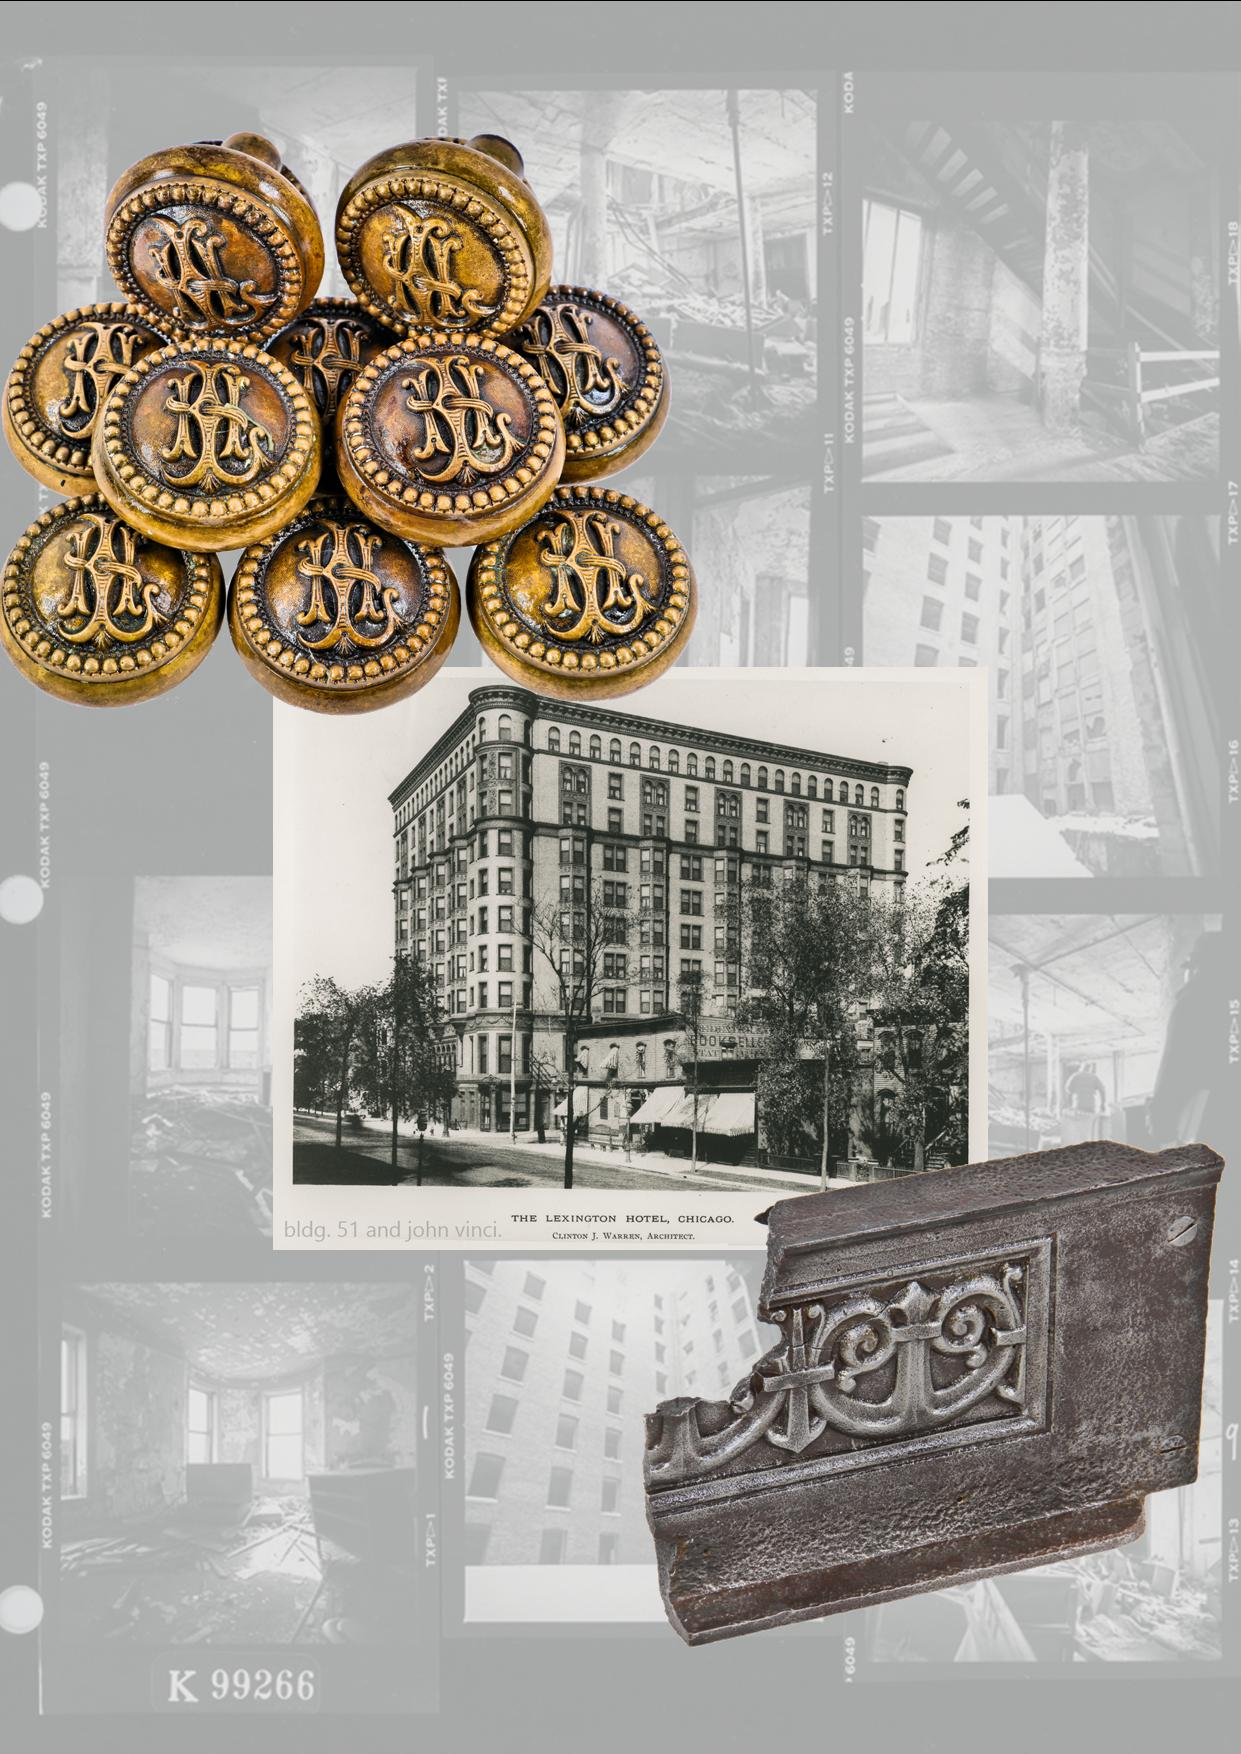 Clinton j warrens lexington hotel through images and artifacts the neoclassical style hotel lexington building was designed by chicago architect clinton j warren in 1891 92 in a four year span from 1889 to 1893 biocorpaavc Image collections